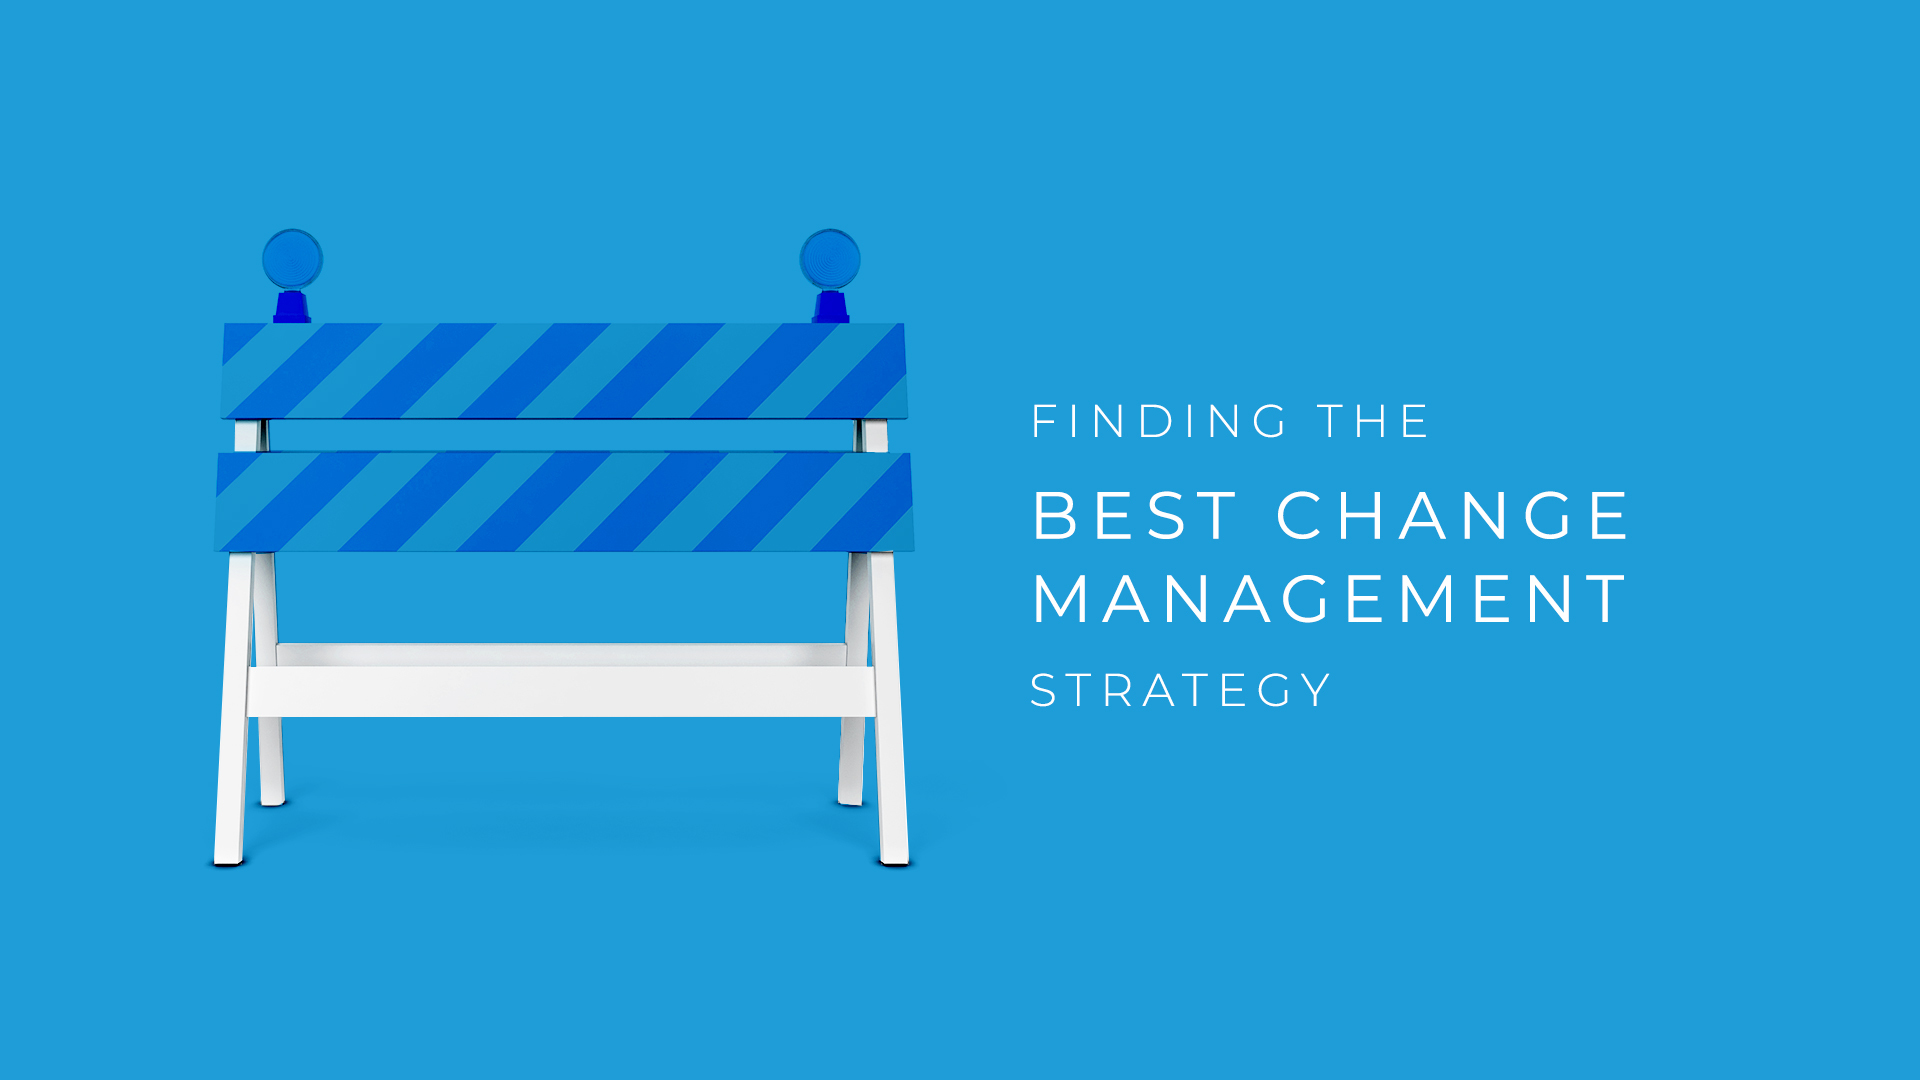 Finding the Best Change Management Strategy